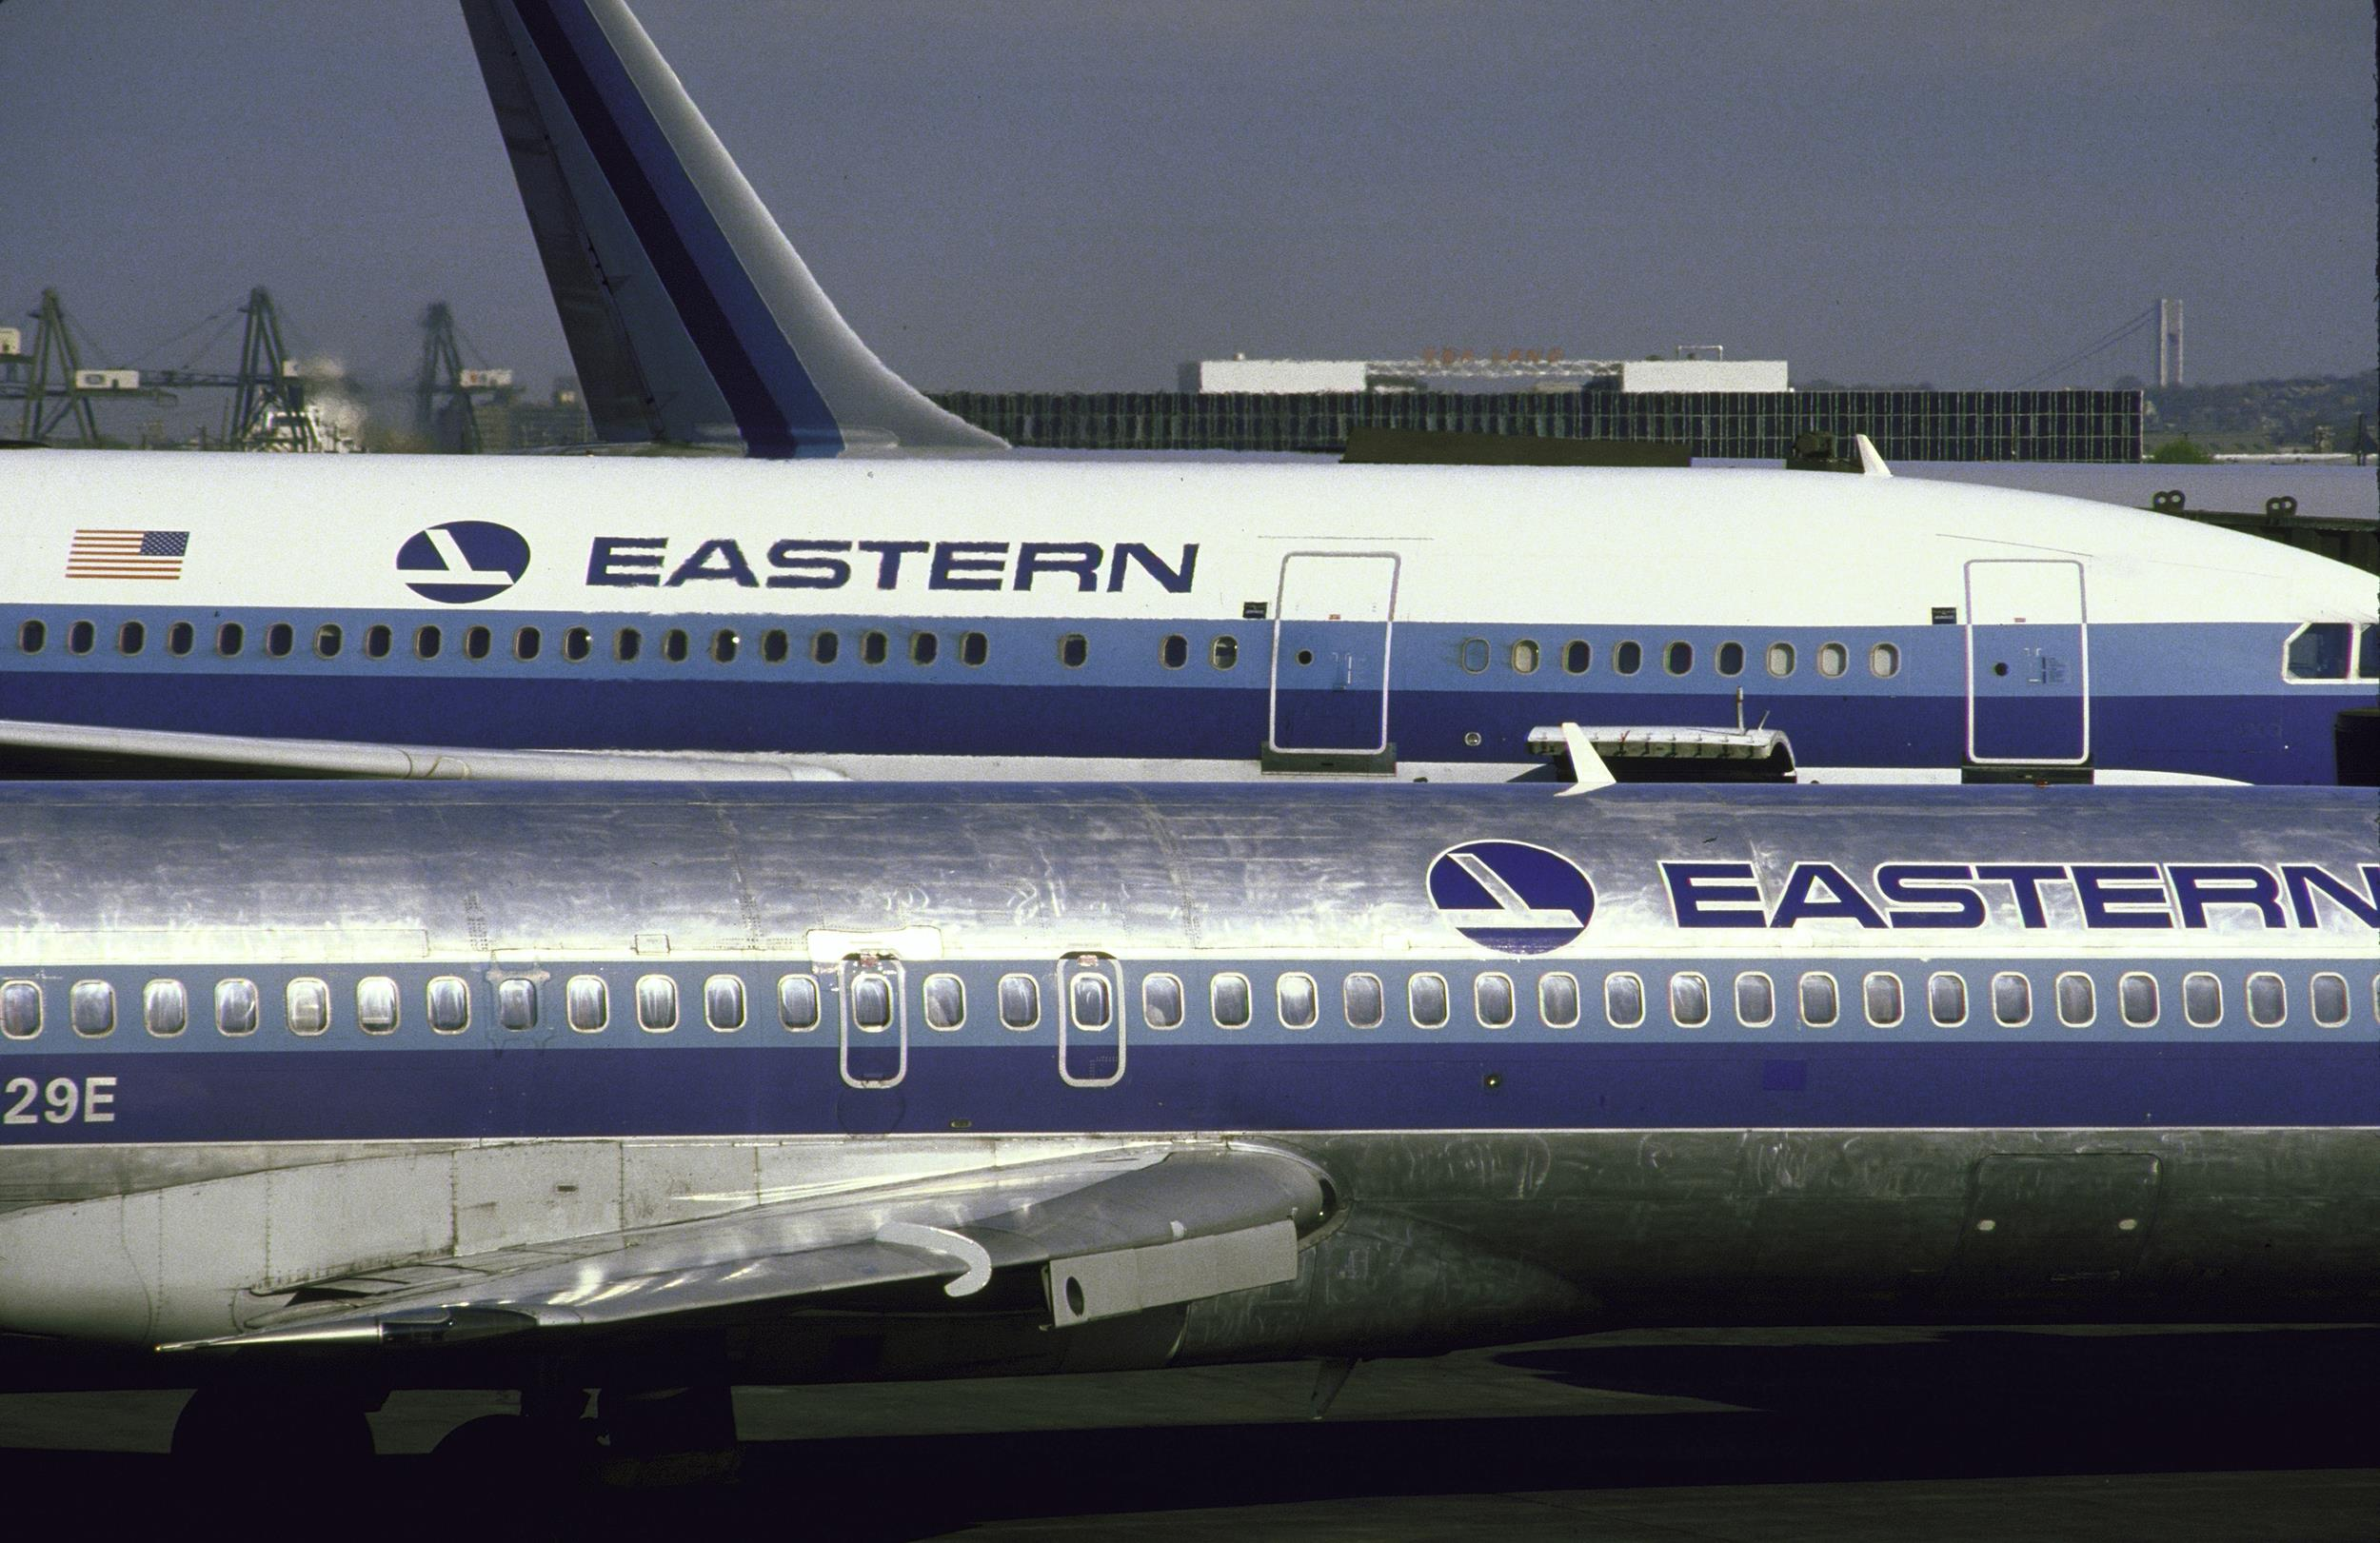 Eastern Airlines jets at Newark Airport in New Jersey in 1986.